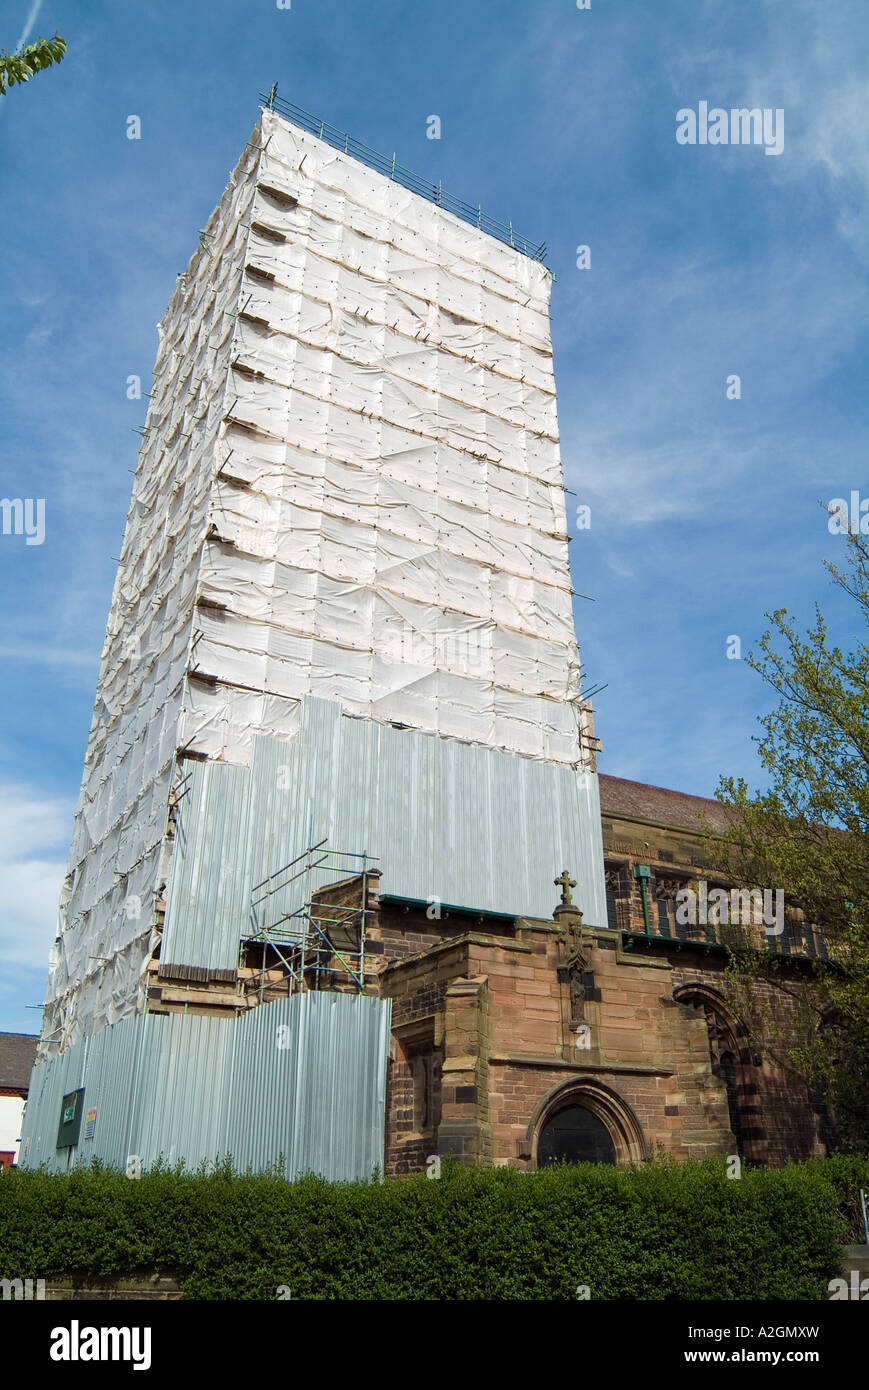 St Marys Church close to the bank of the River Mersey in West bank Widnes - Stock Image